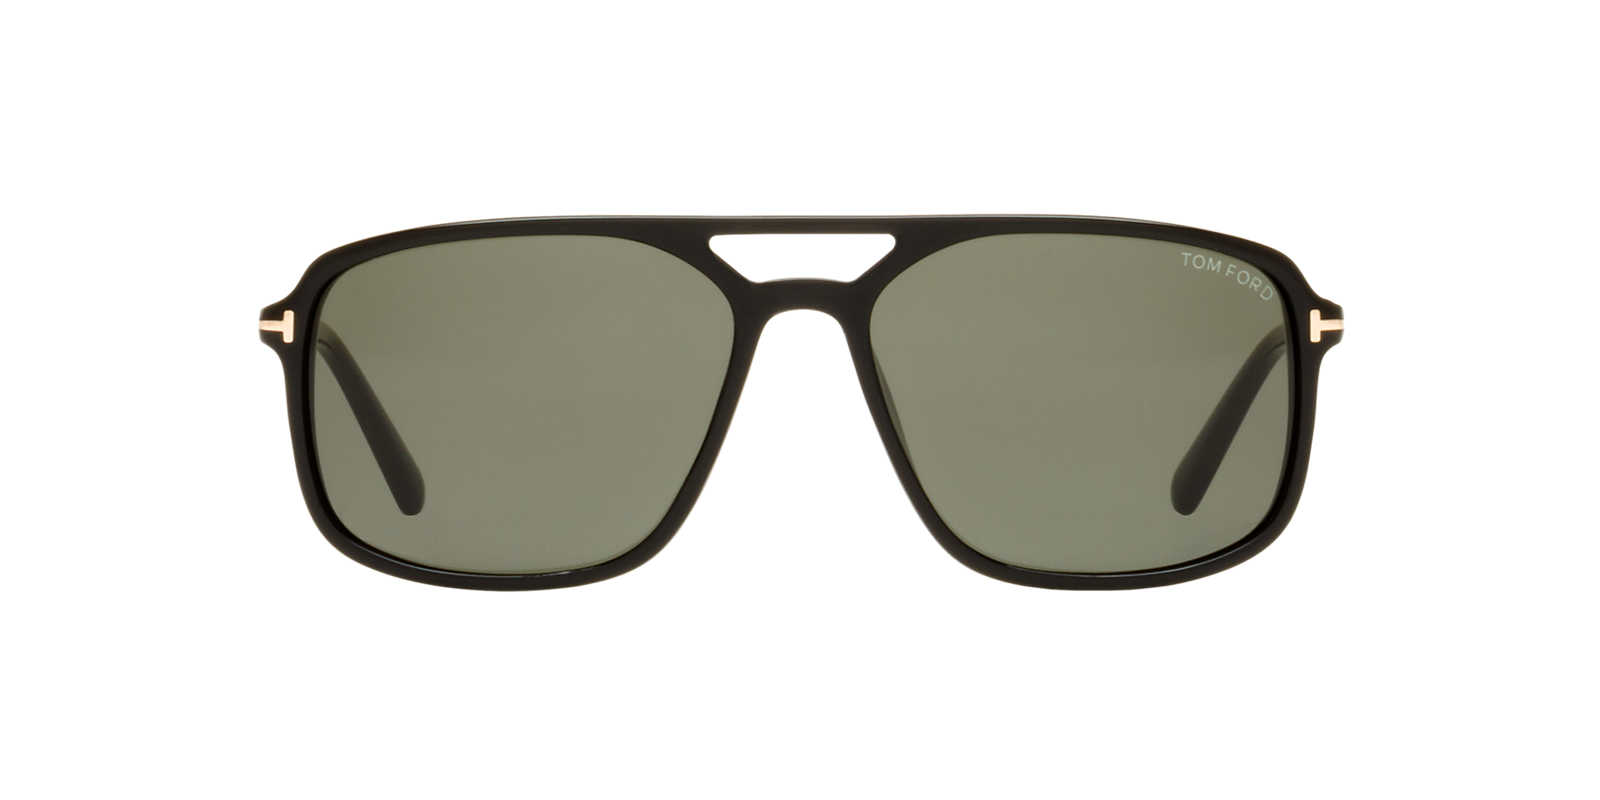 image: tom ford sunglasses [21]